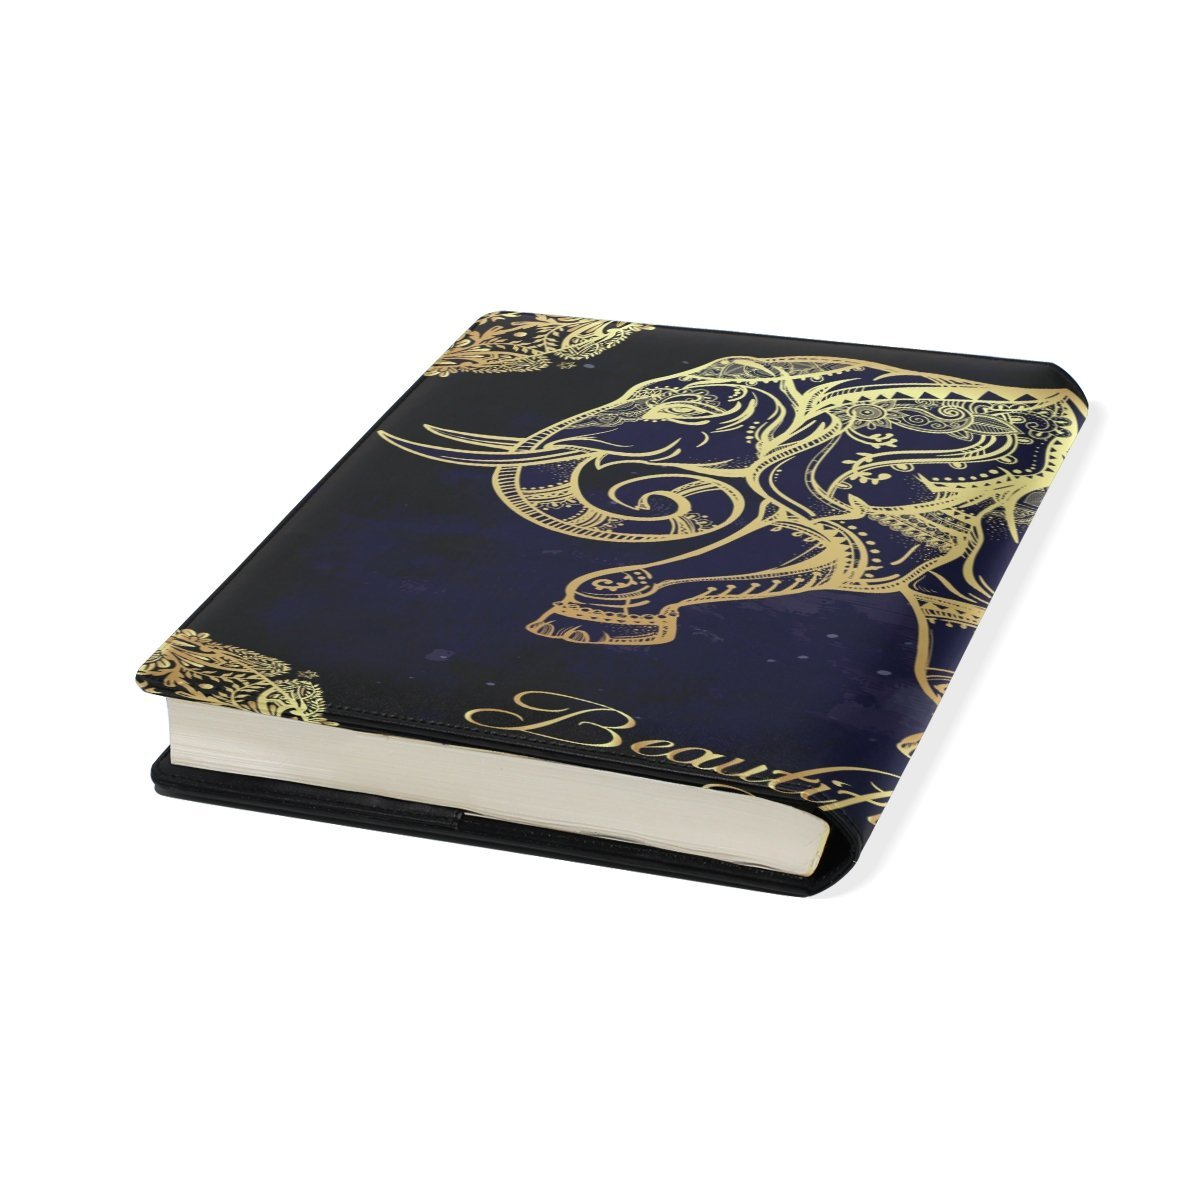 Sunlome Ornate Indian Elephant Pattern Stretchable PU Leather Book Cover 9 x 11 Inches Fits for School Hardcover Textbooks